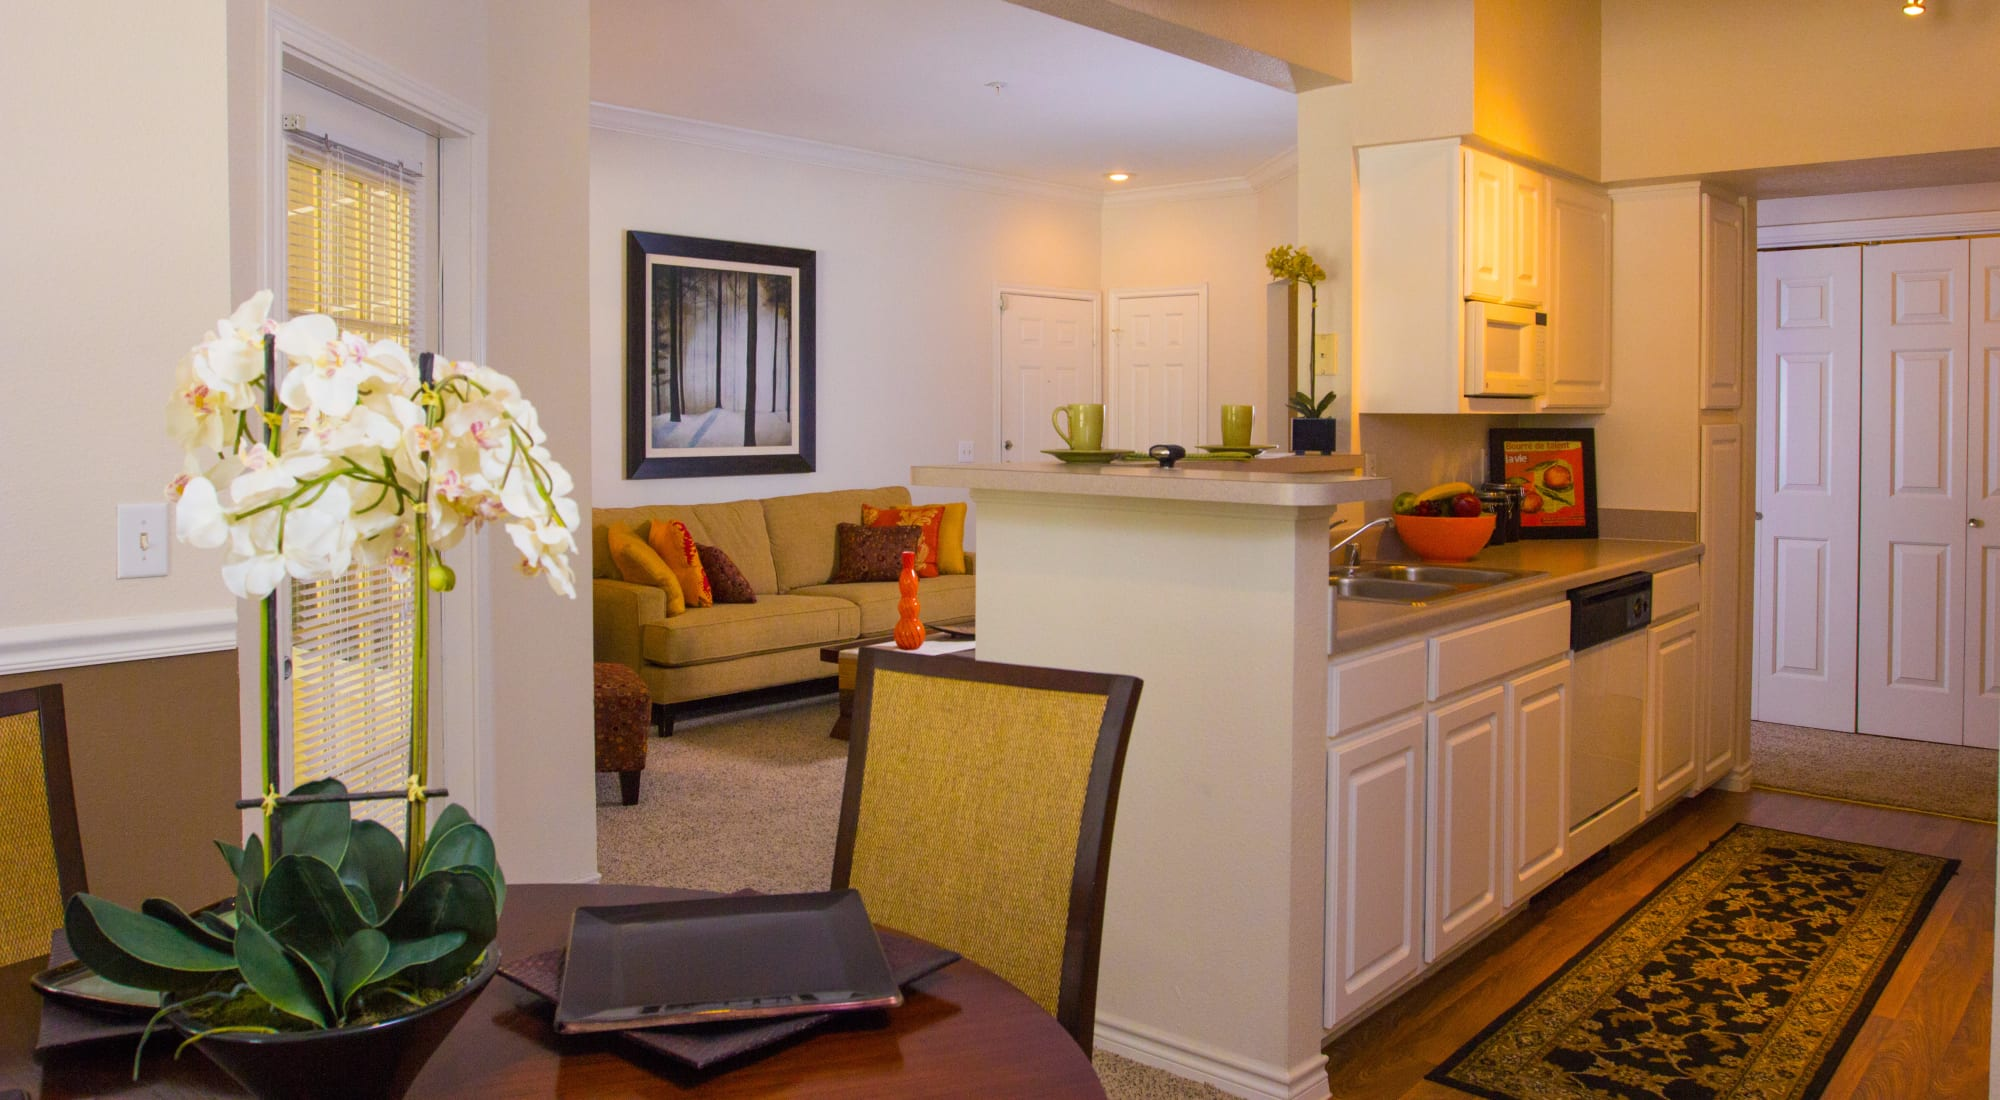 Apartments at The Lodge at River Park in Fort Worth, Texas